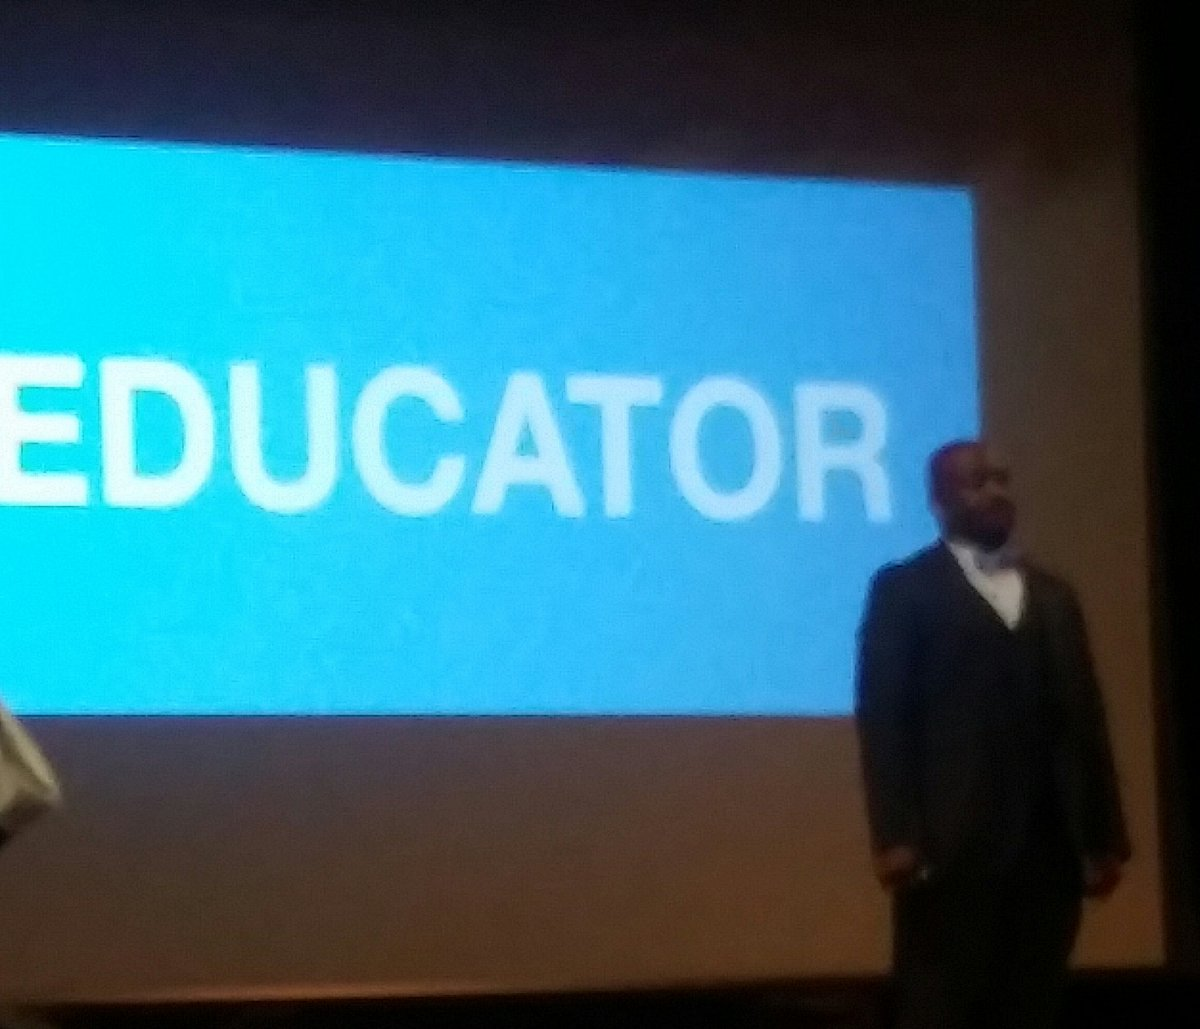 Pine Tree ISD  Convocation 2017 w/ Ken Williams! #ALLIN  @unfoldthesoul #atplc #educator   #settingthePACE @pinetreepace #ptisd<br>http://pic.twitter.com/yD136FxxAO